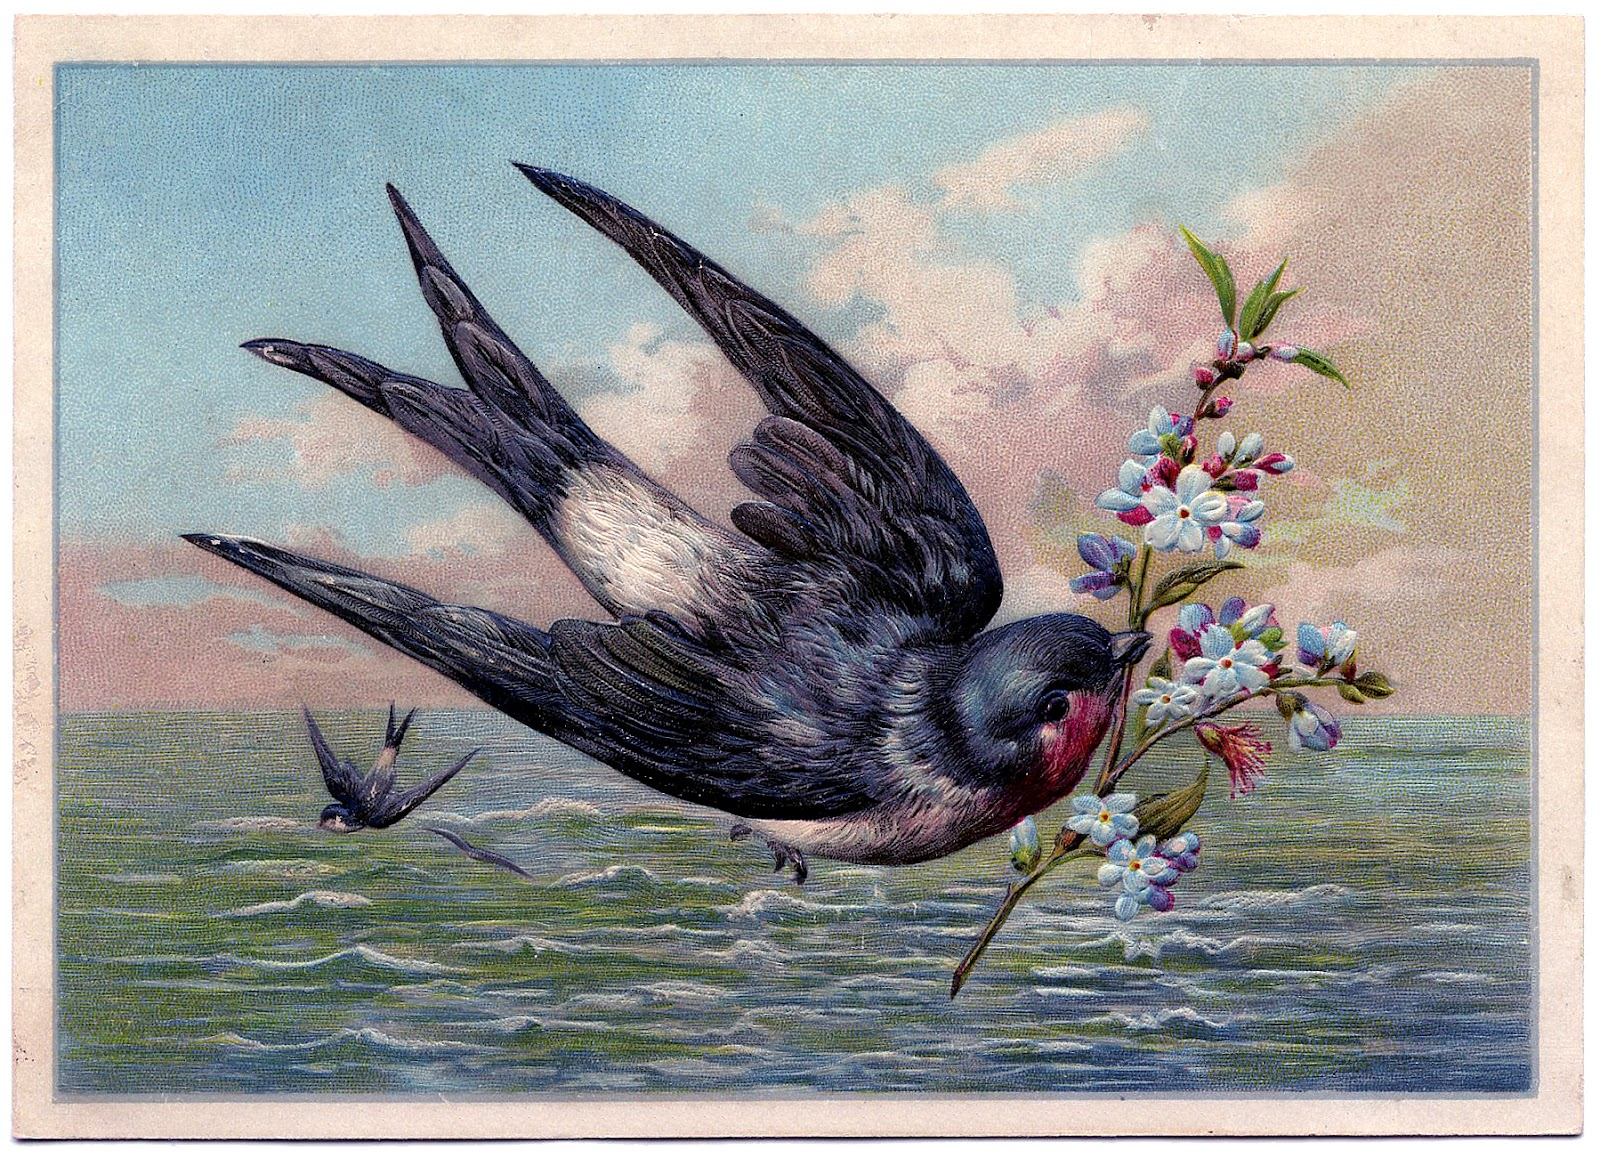 Silhouette Girl Real Wallpaper Vintage Graphic Beautiful Swallow Bird At Sea The